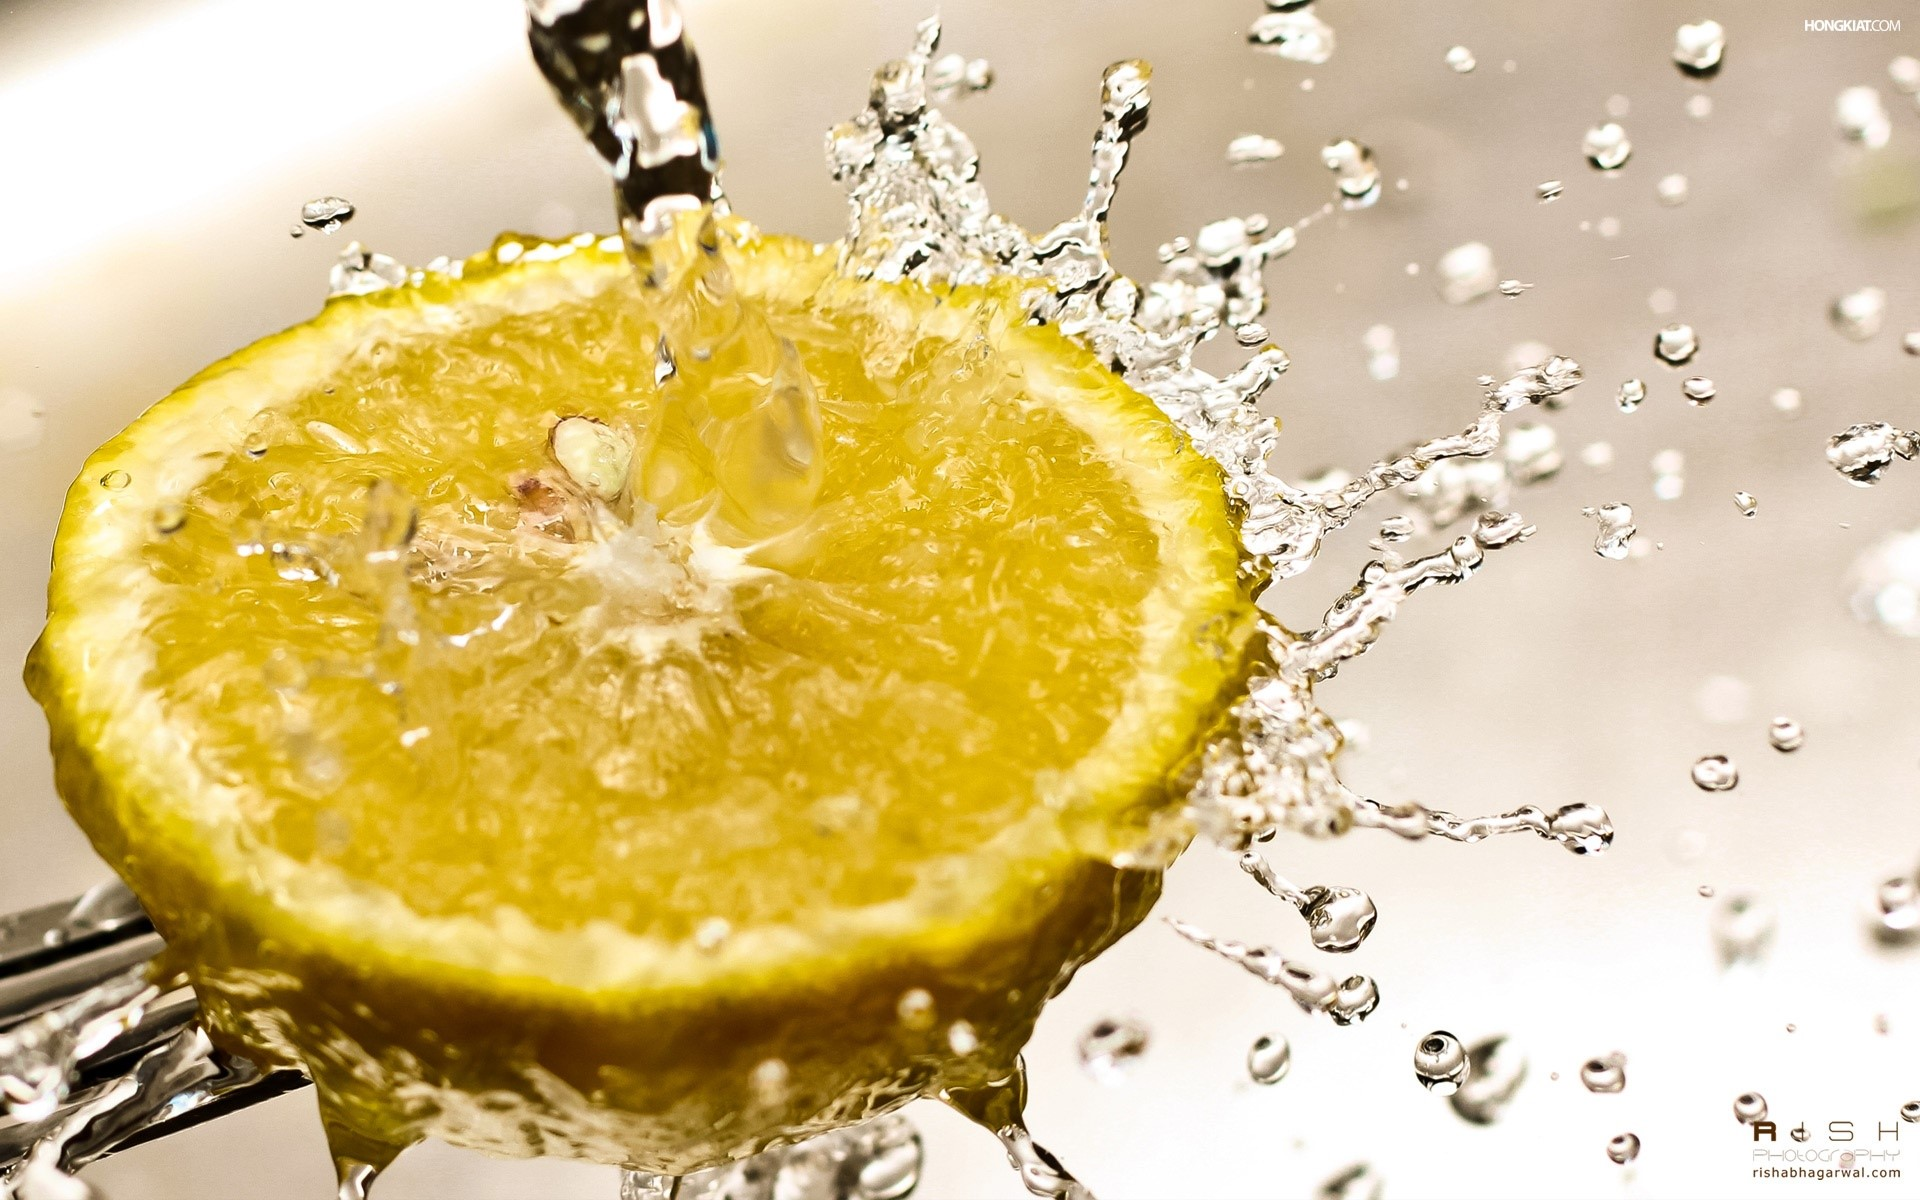 Wallpaper Lemon in water